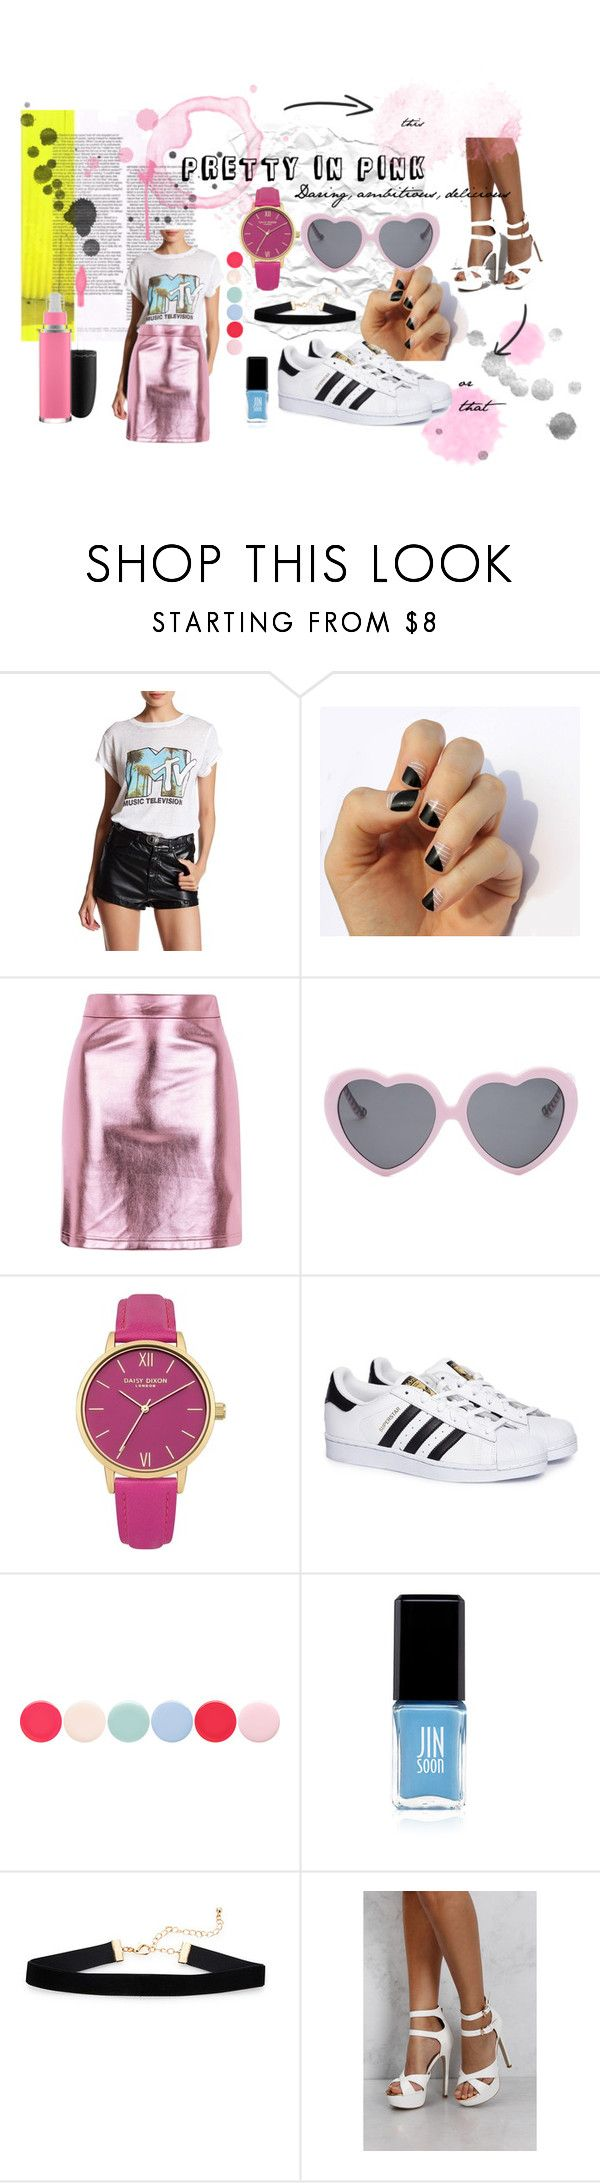 """""""Pretty in pink"""" by akay150 on Polyvore featuring Recycled Karma, SoGloss, Topshop, Vans, adidas, Nails Inc., Jin Soon and Rare London"""